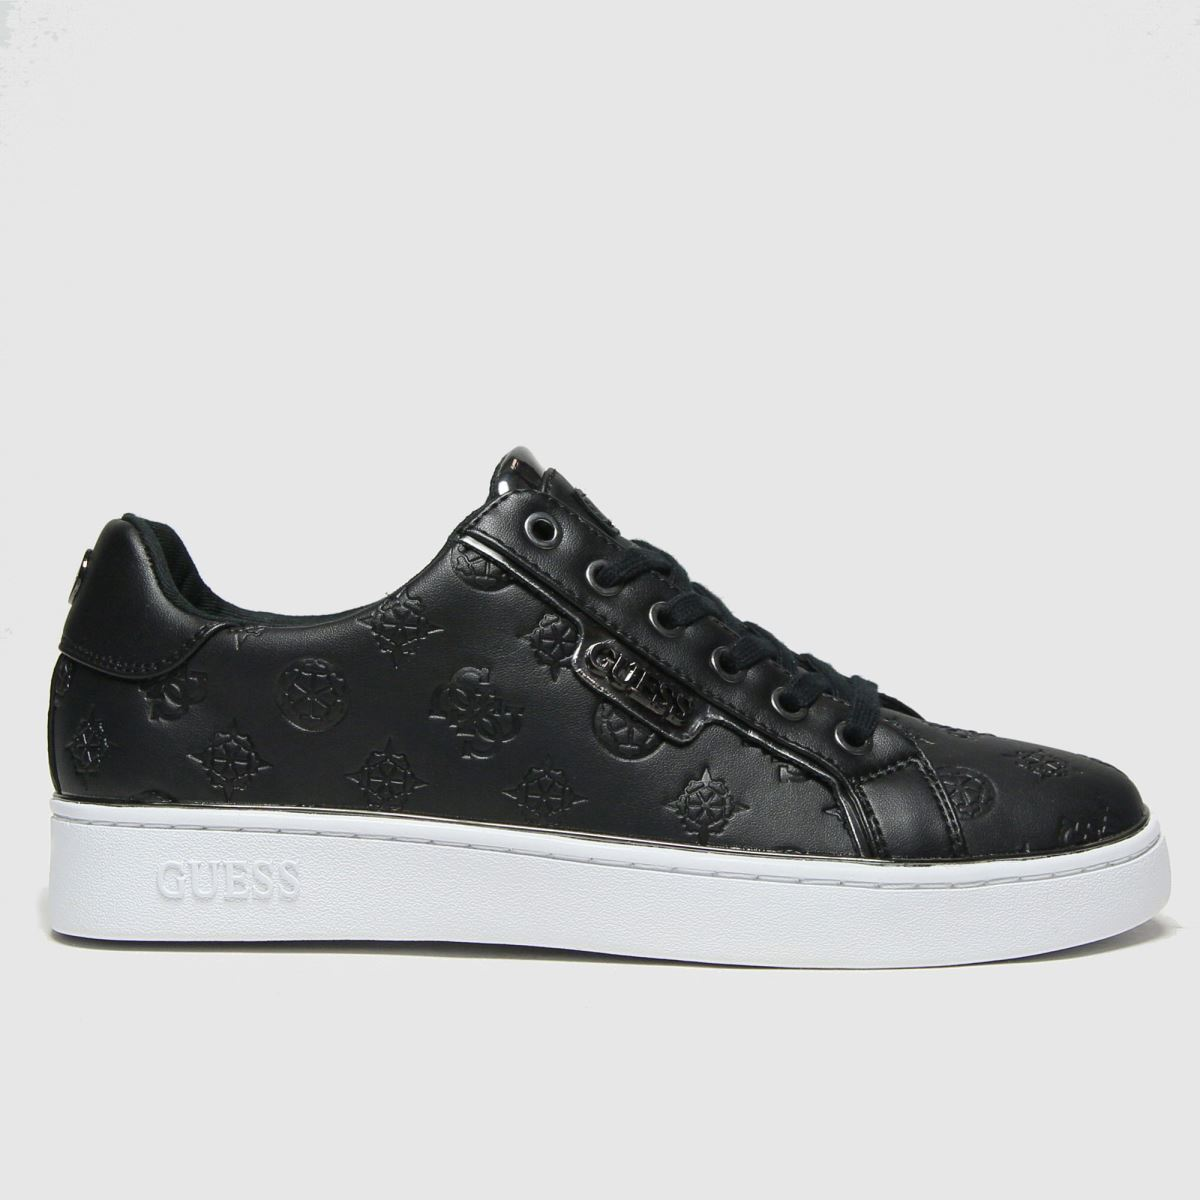 GUESS Black & Silver Banq Trainers